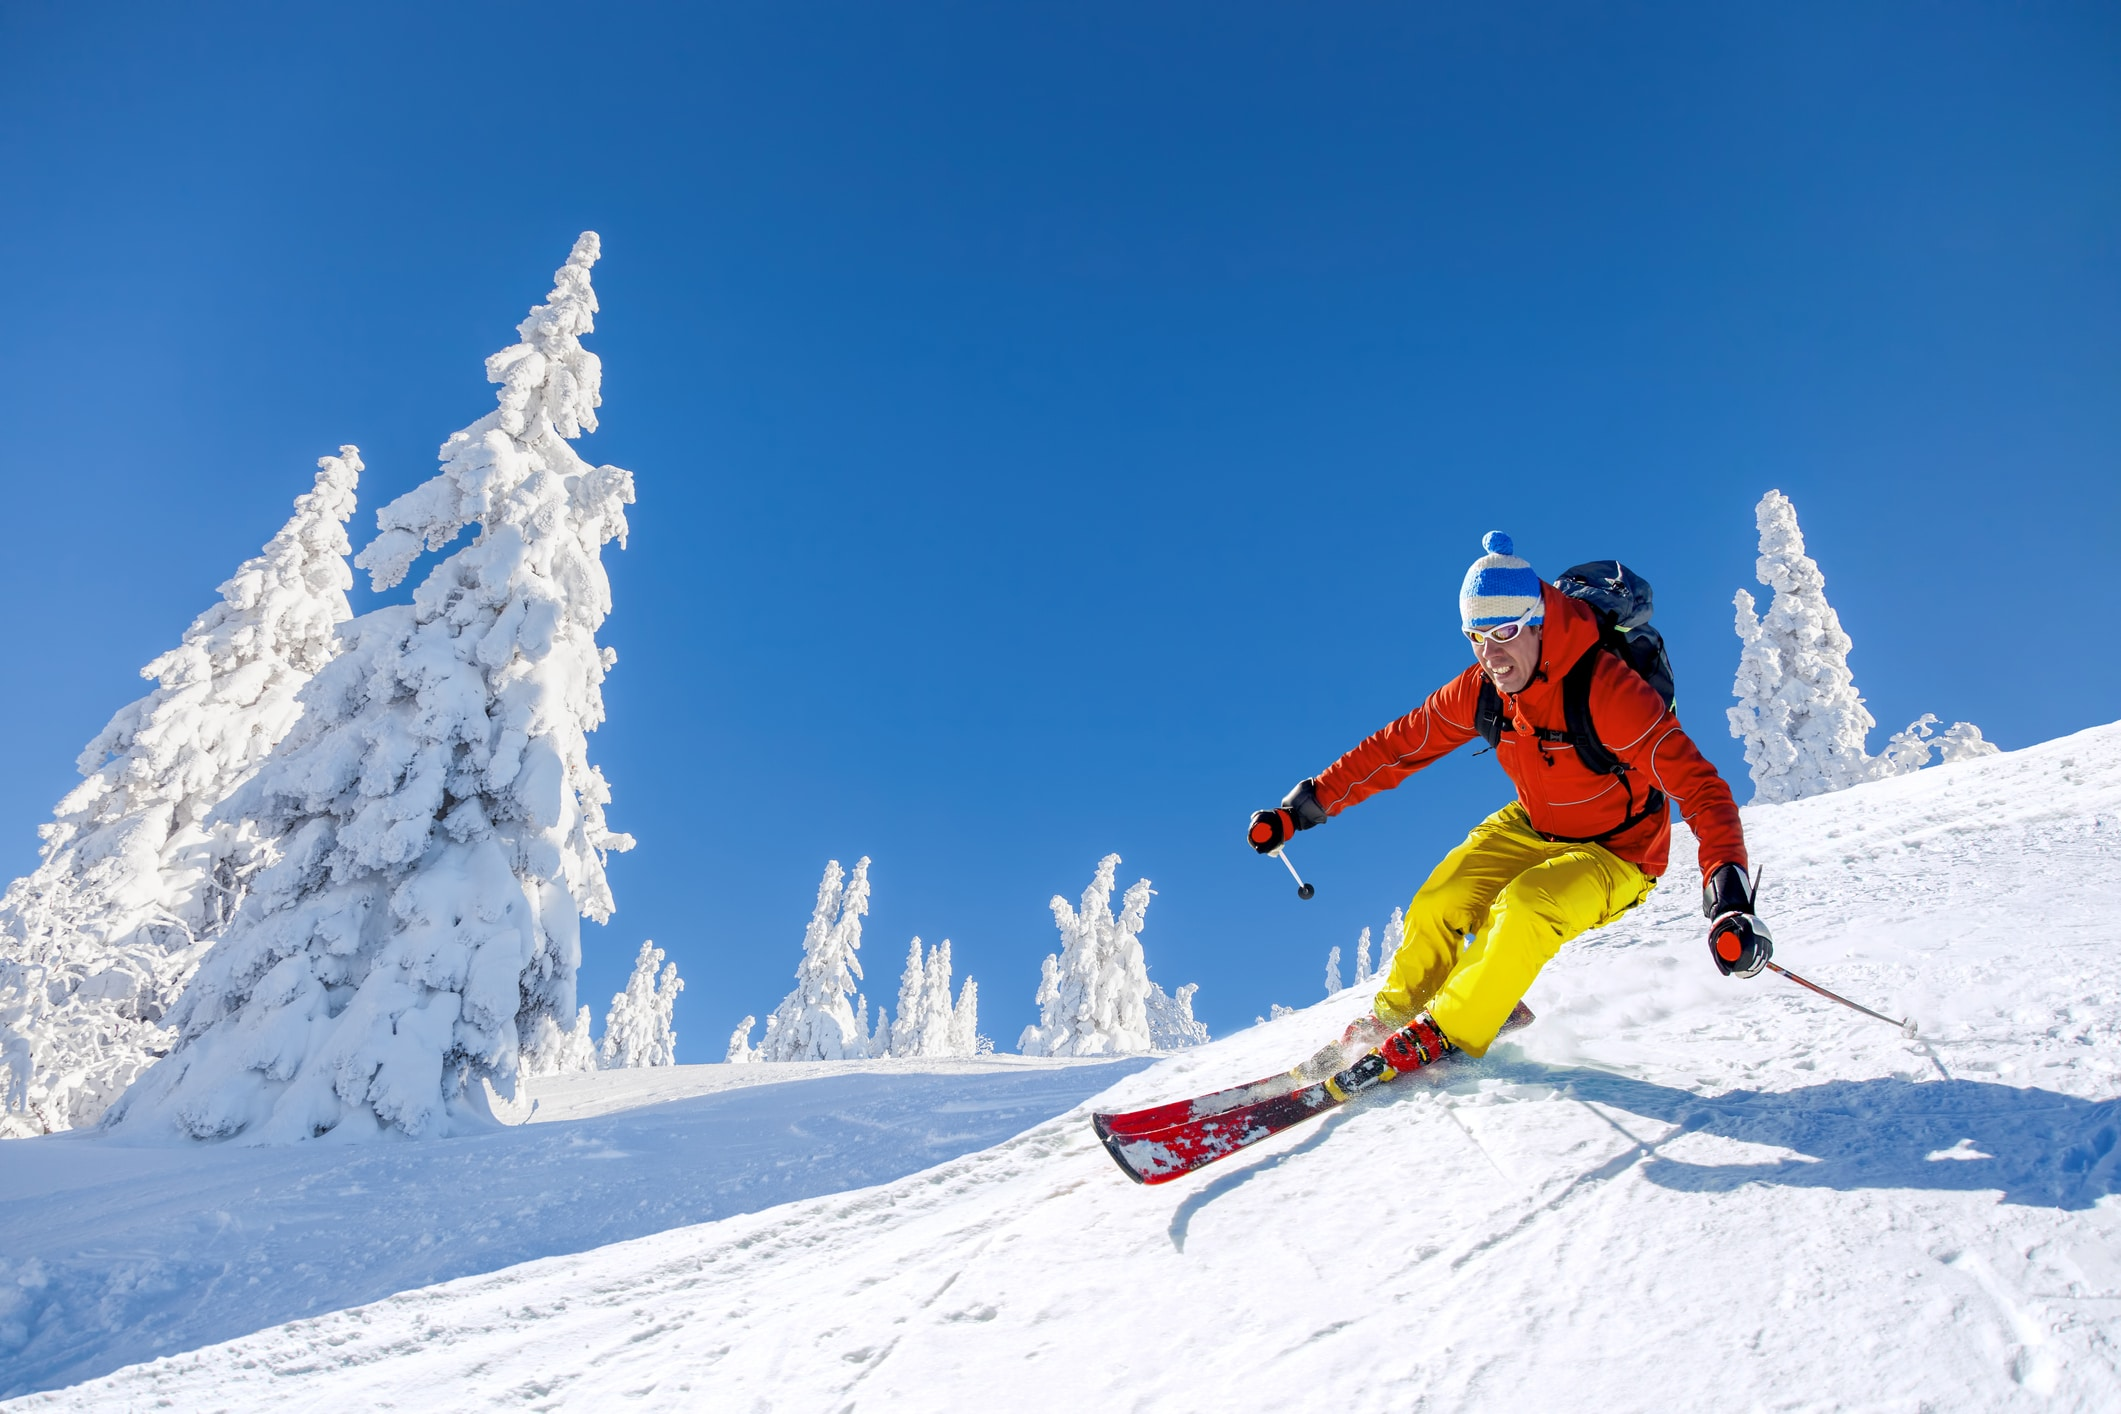 RVing skiers and snowboarders